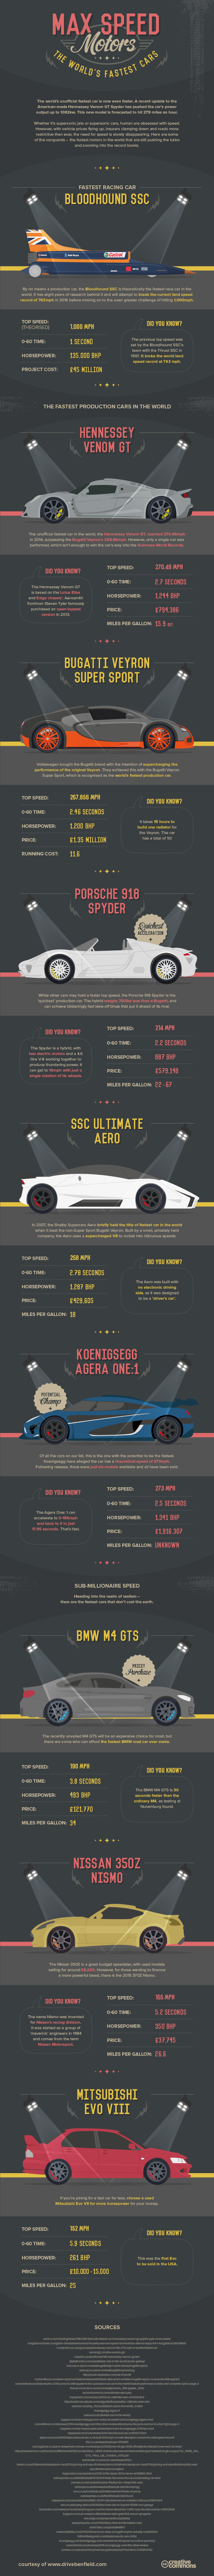 infographic - Benfield Motors - the worlds fastest cars-1